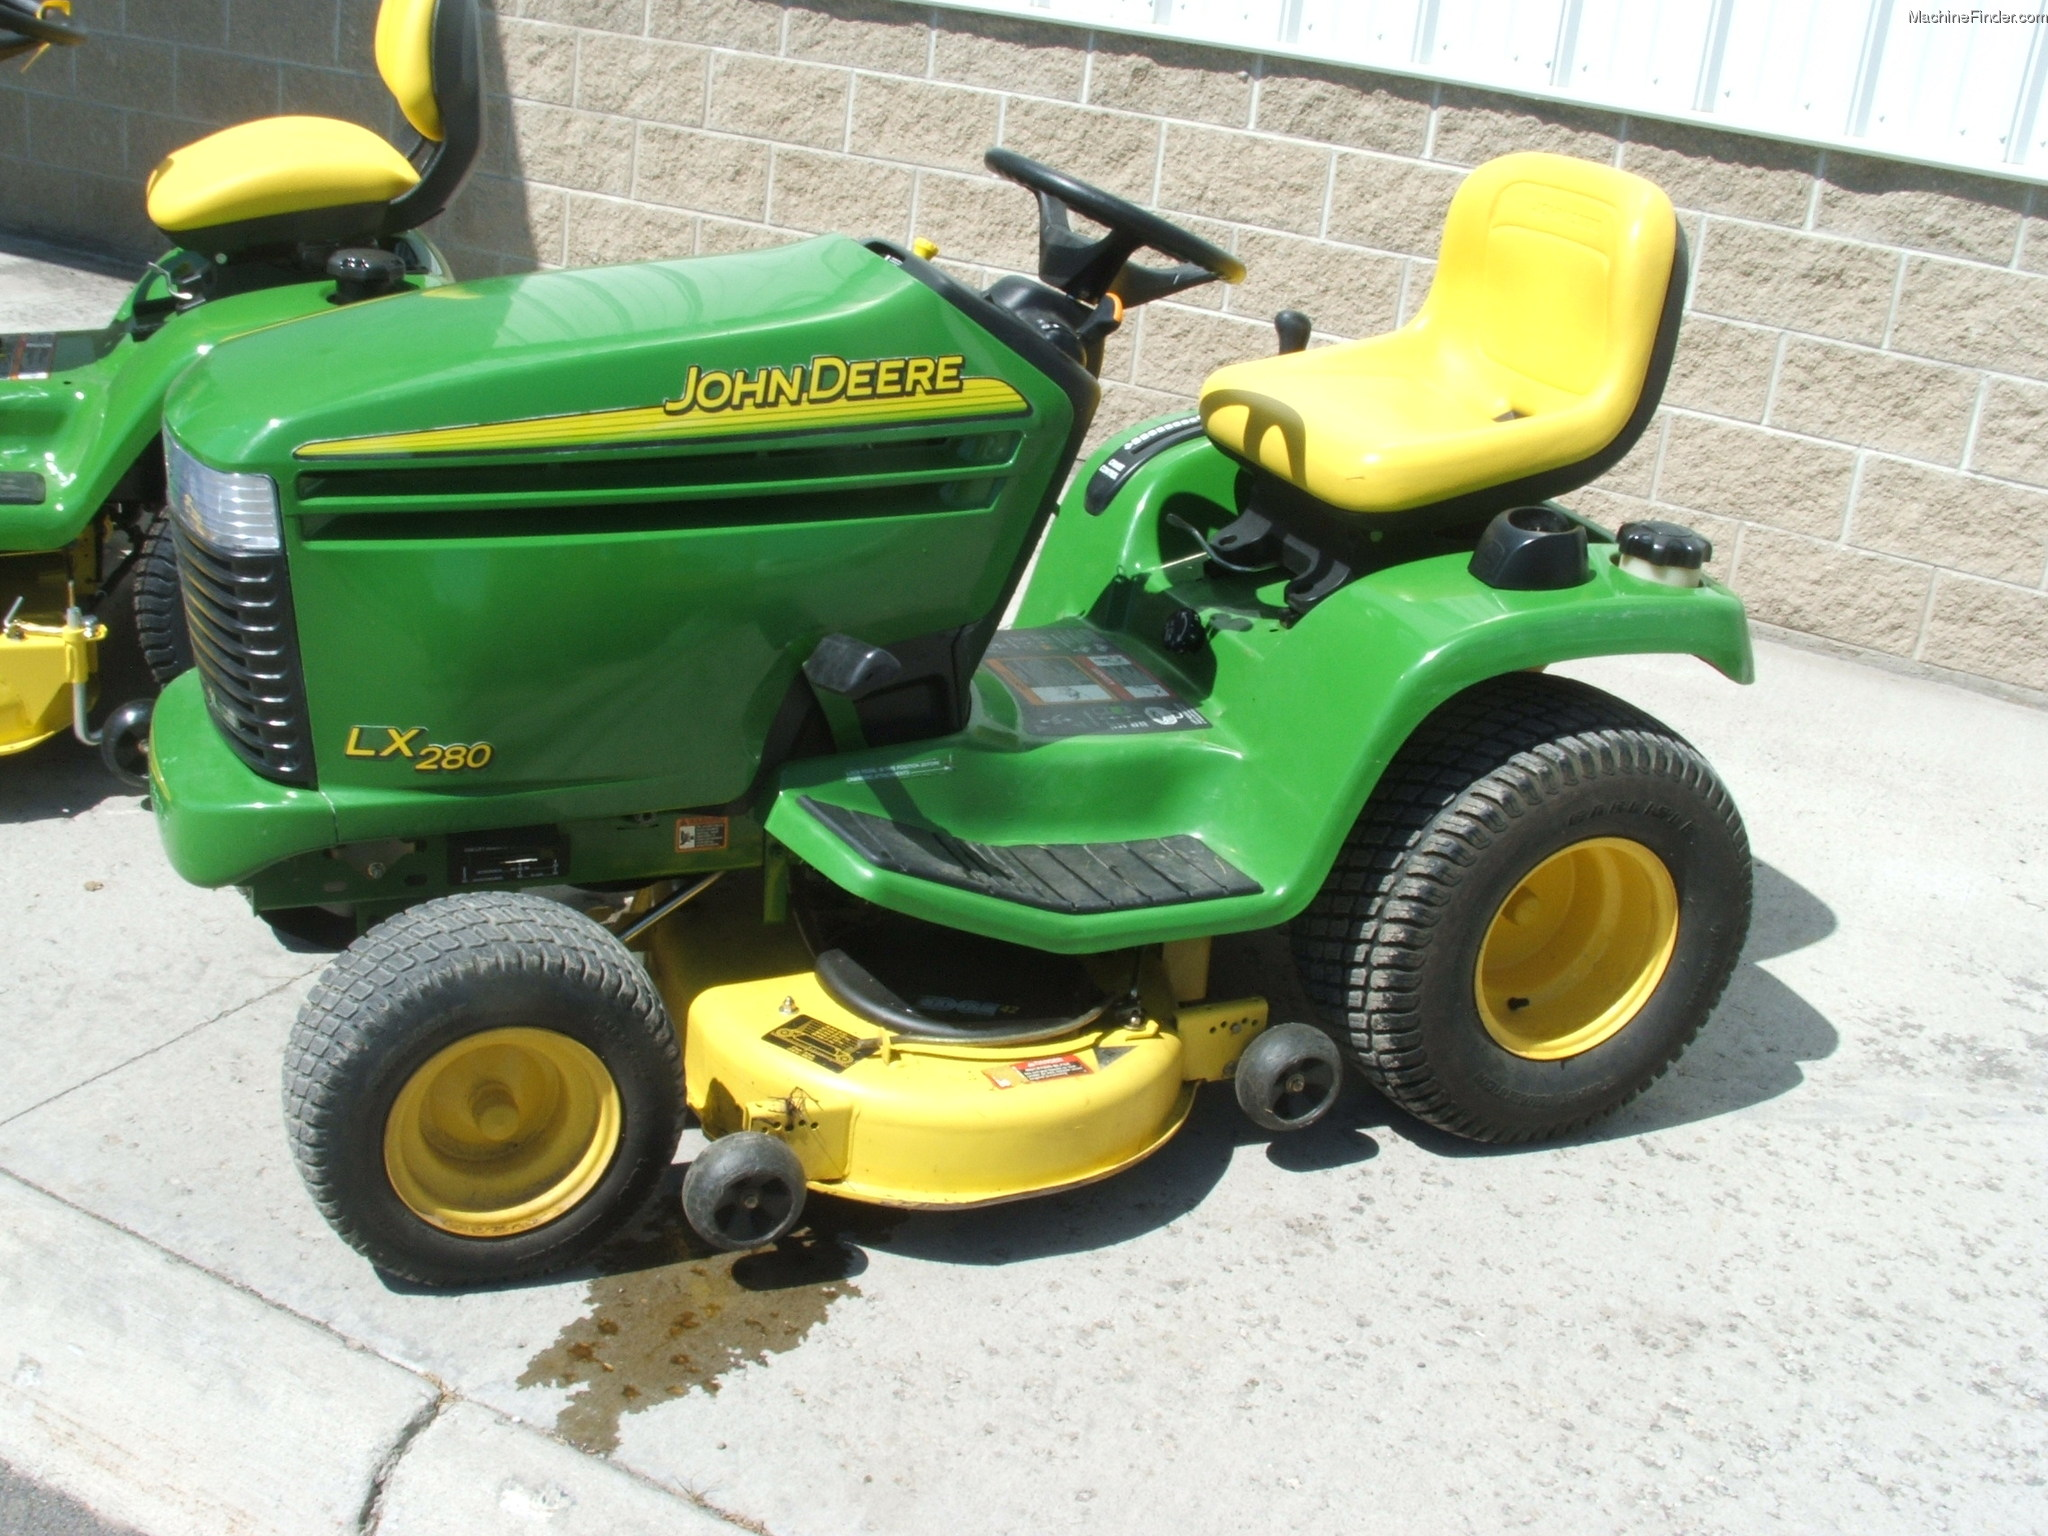 deere john tractor april part ii garden problem transmission propelled youtube mower lawn watch self parts